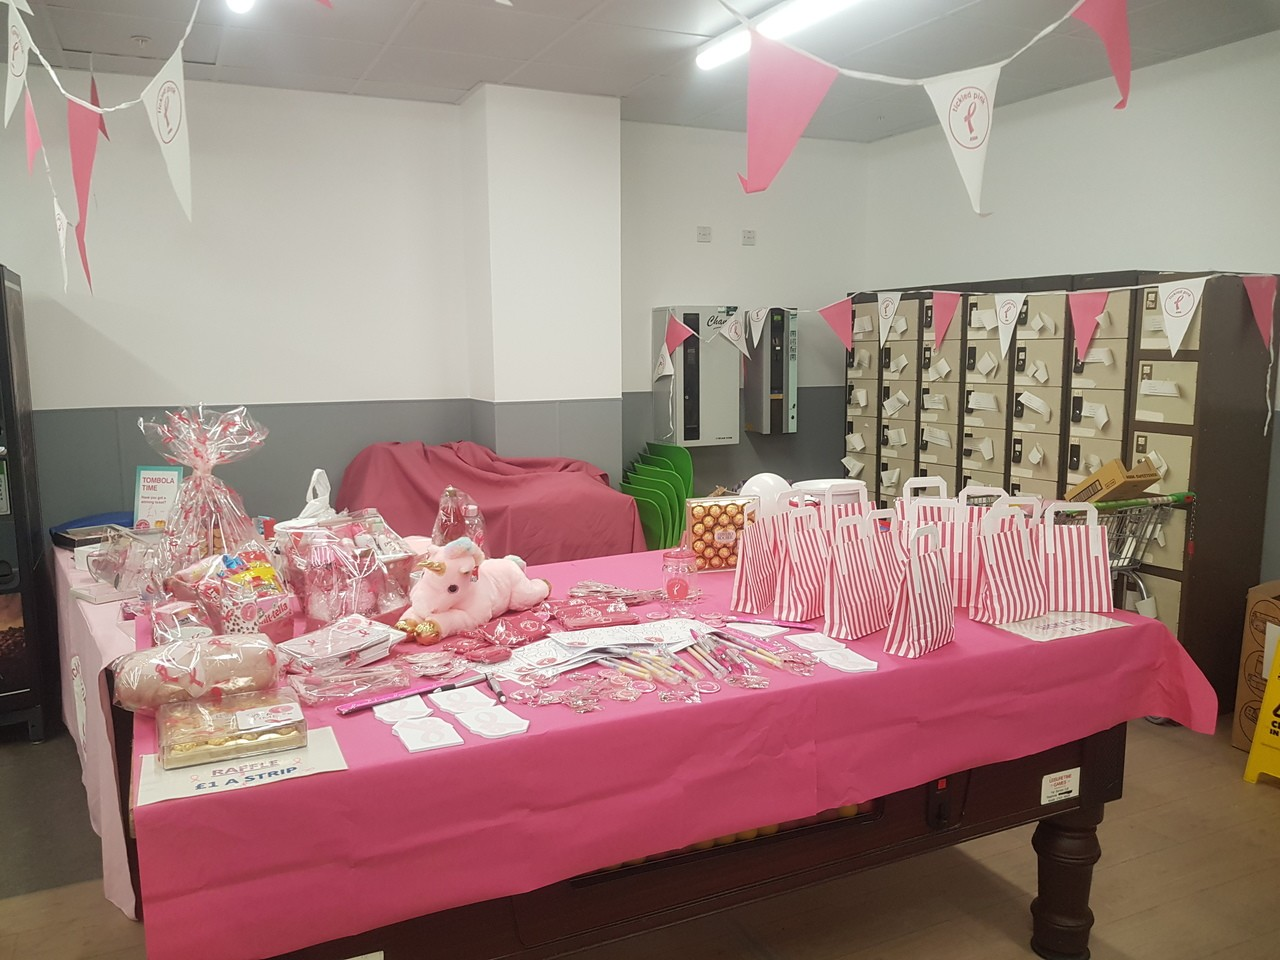 Tickled Pink Celebrations in the Heath | Asda Small Heath